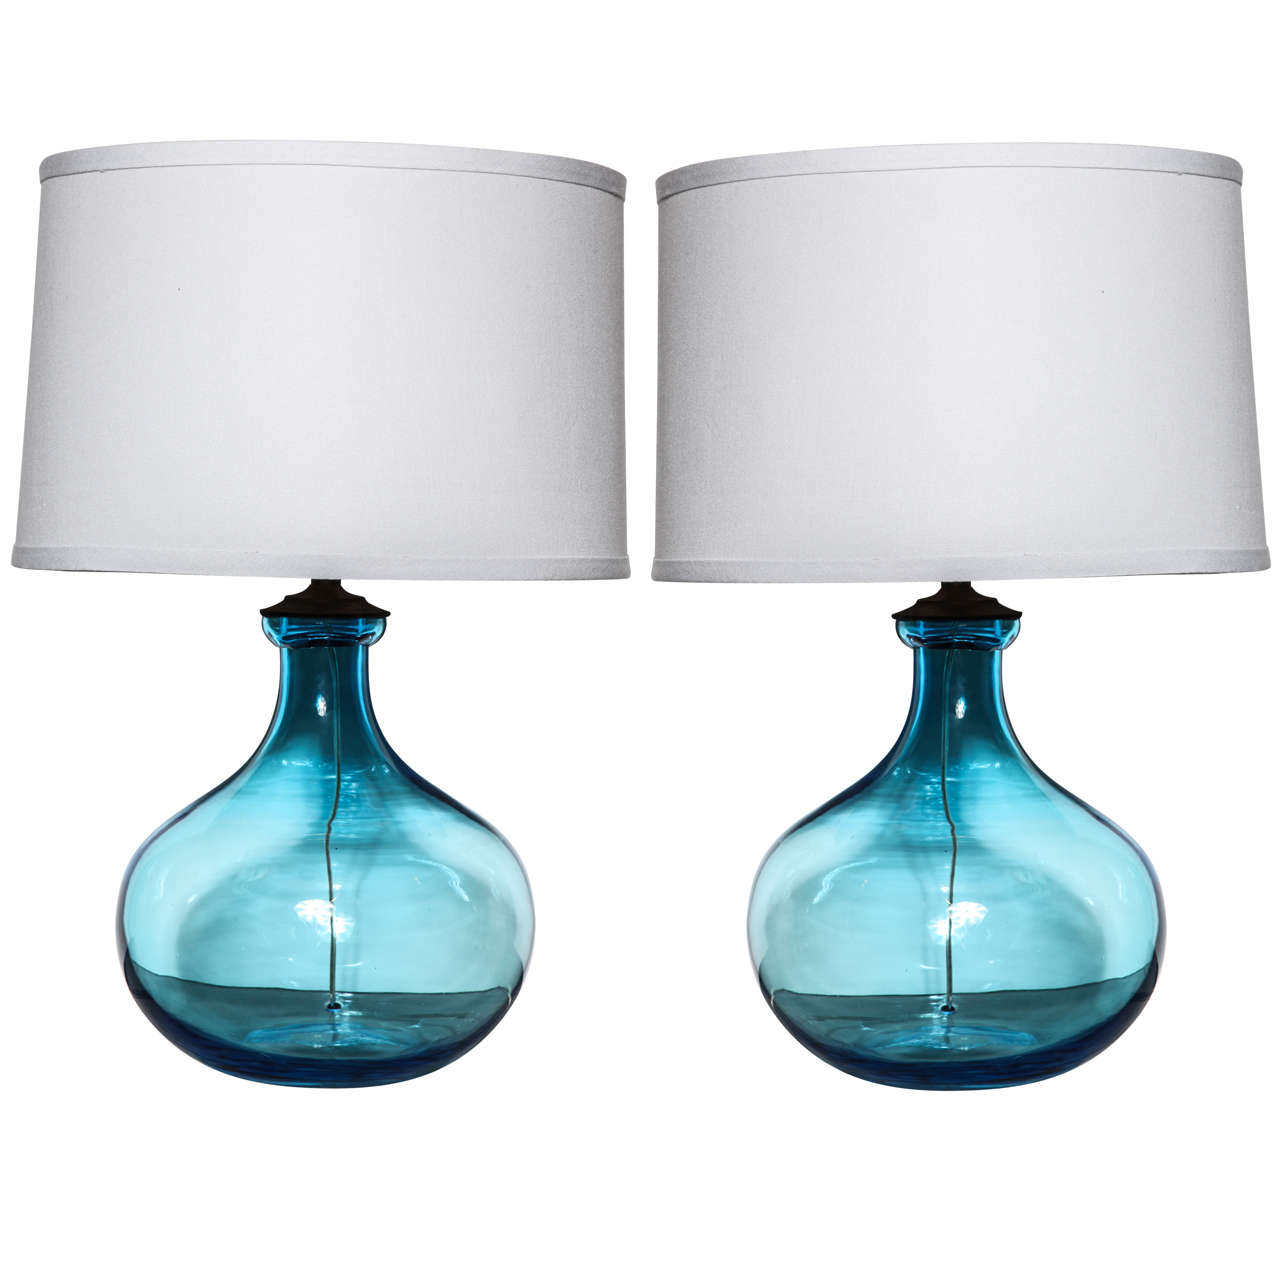 Pair Of Iris Blue Table Lamps At 1stdibs